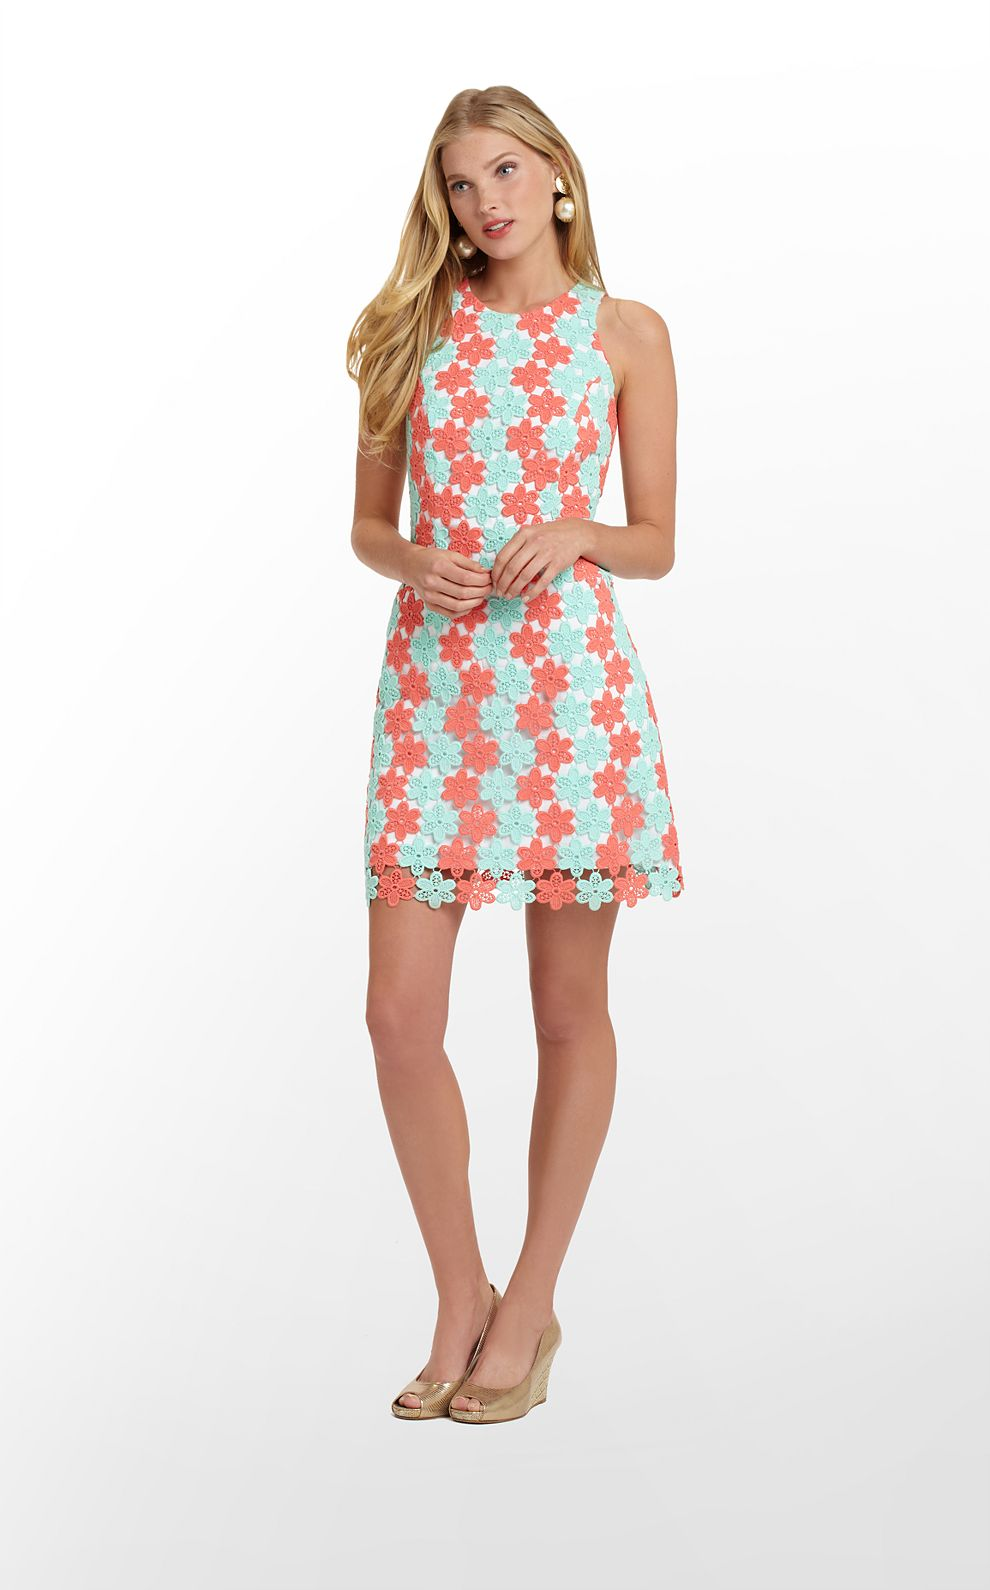 Lilly Pulitzer Cheap Dresses Lilly Pulitzer Dress